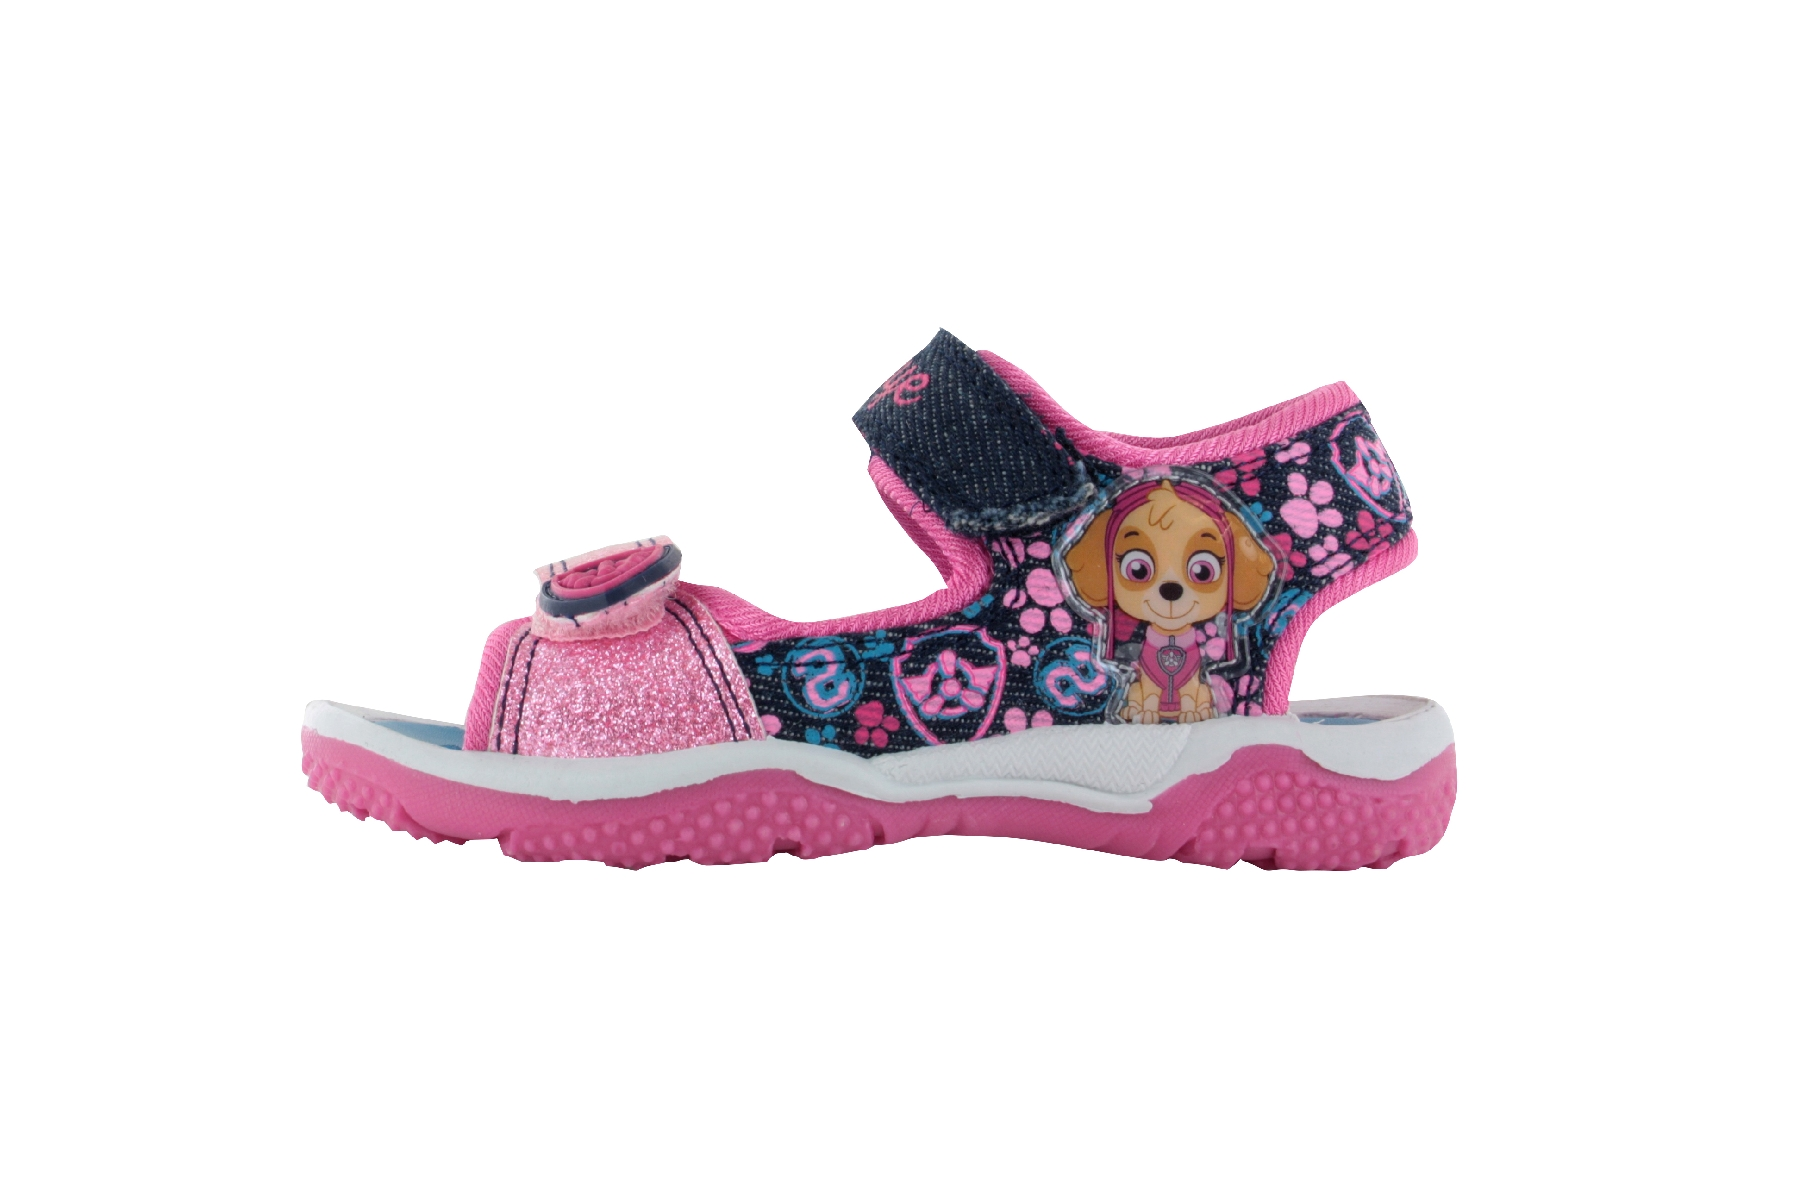 Paw Patrol Skye Open Toe Beach Holiday Summer Adjustable Sandals Various Sizes